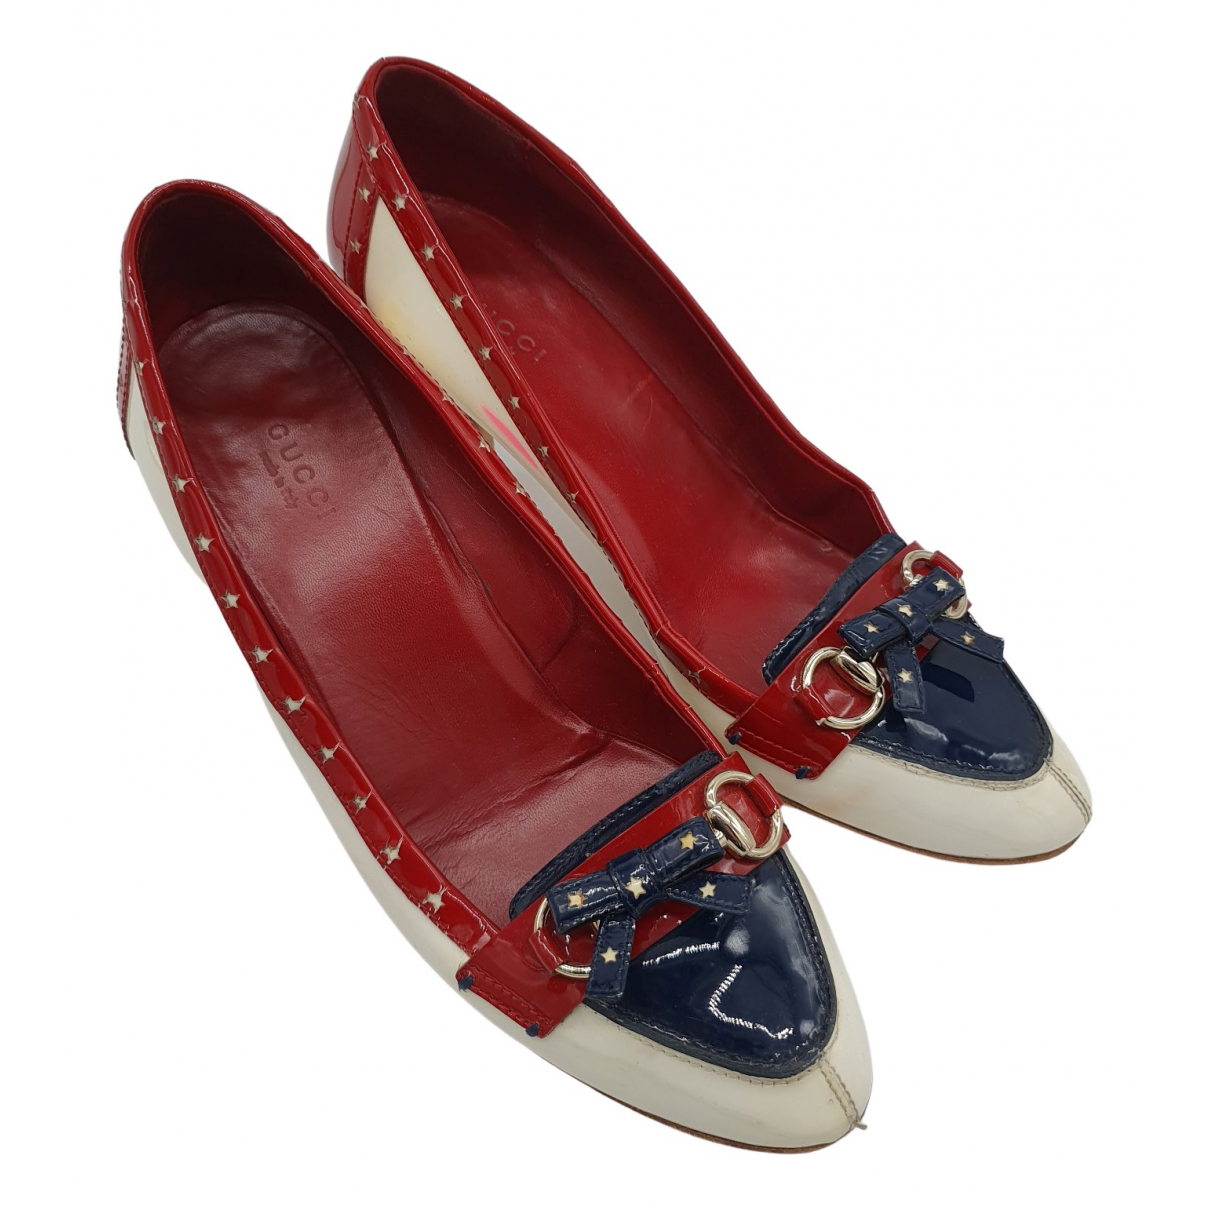 Gucci \N Multicolour Patent leather Heels for Women 39.5 EU